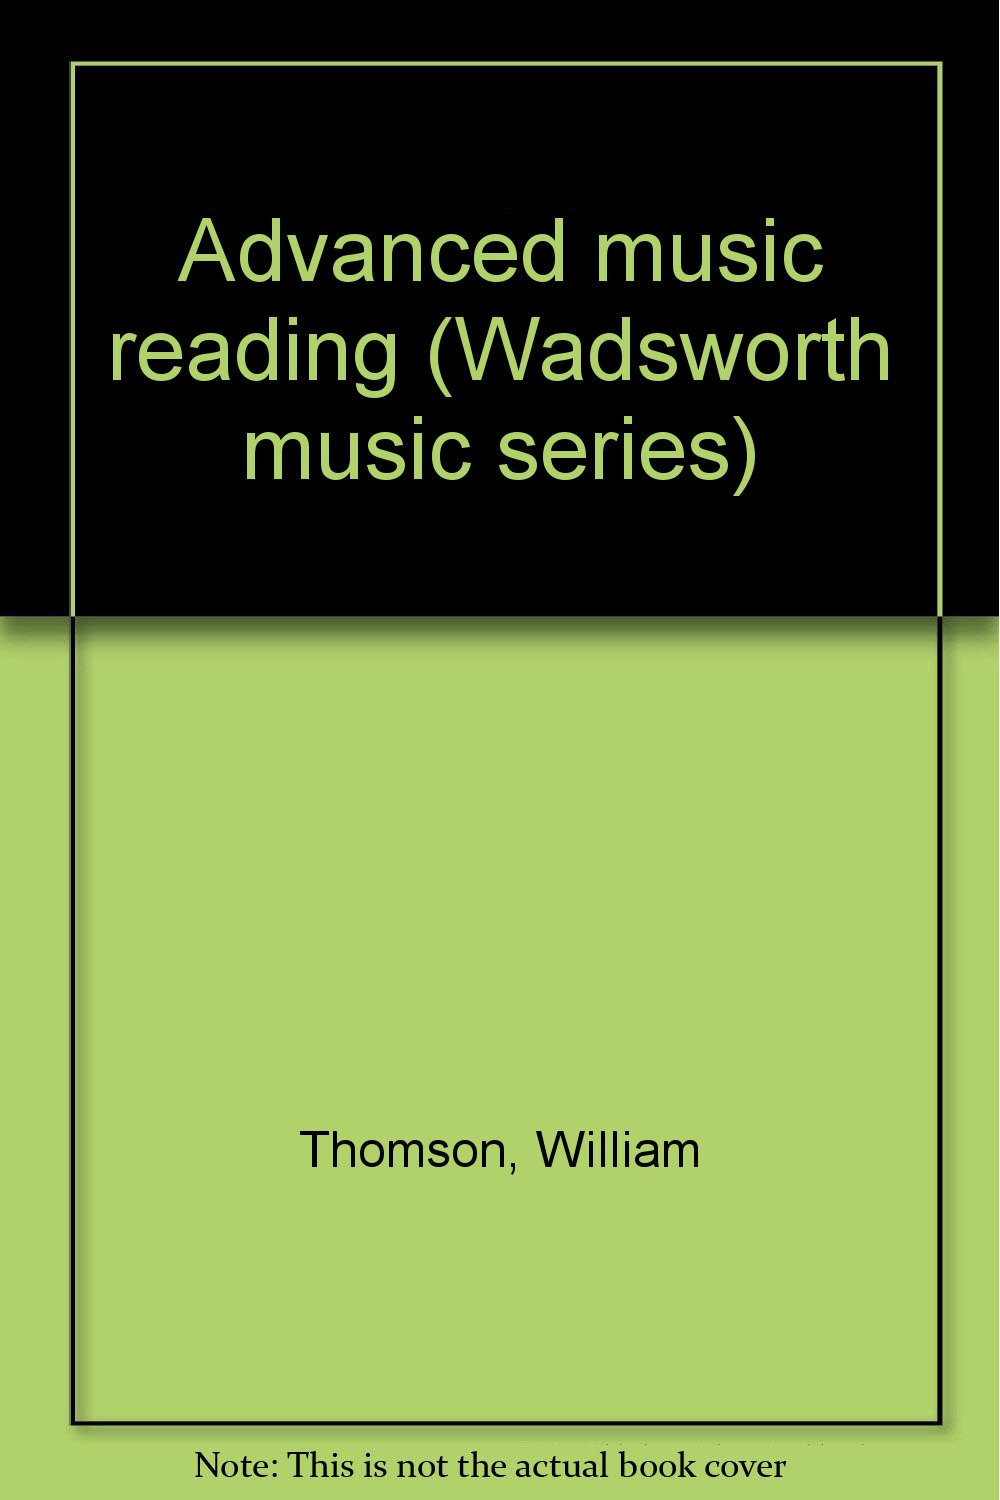 basic concepts in music wadsworth music series